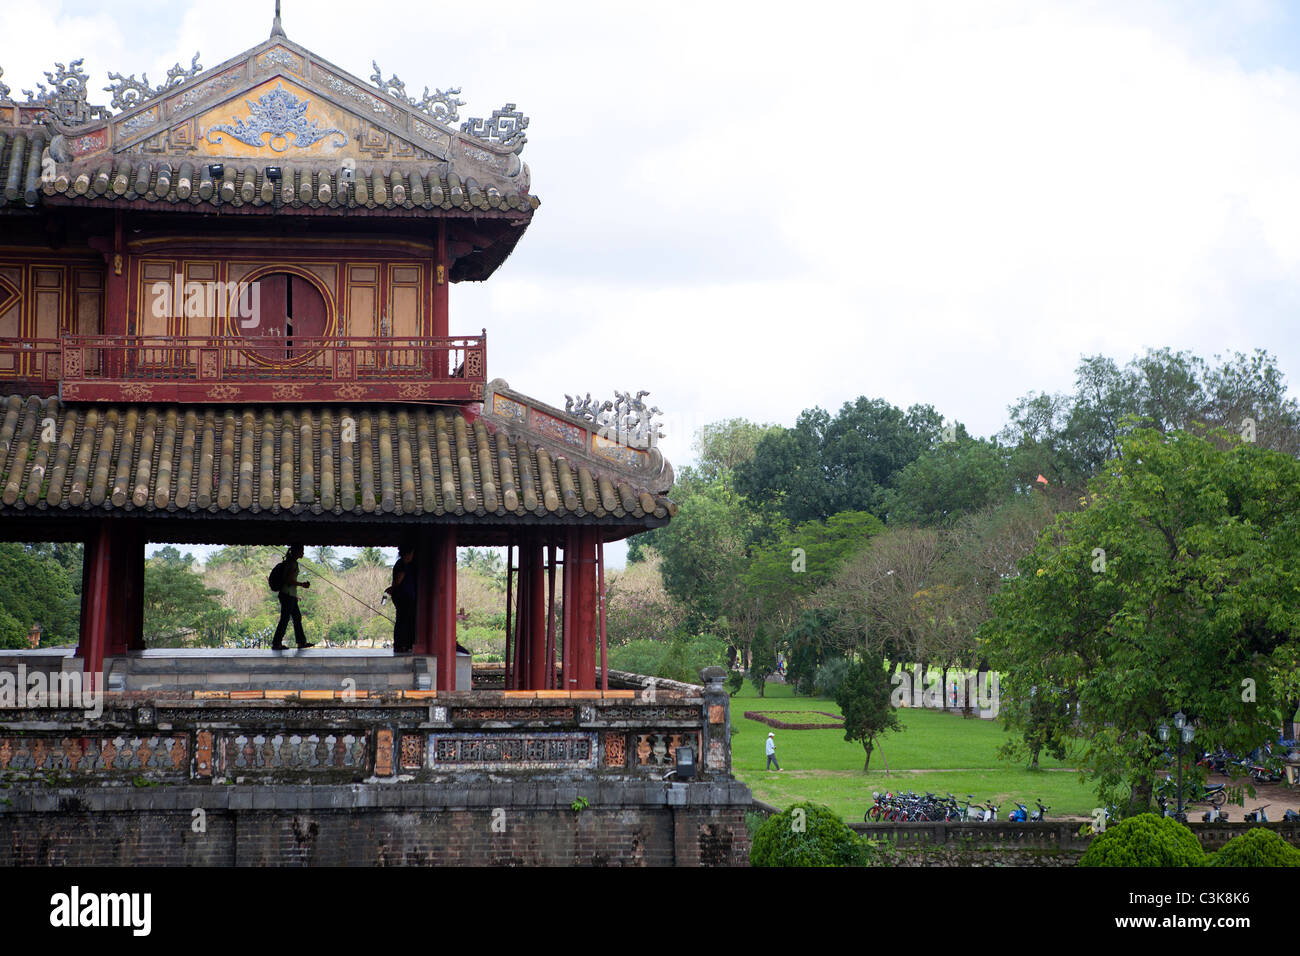 Turret at the Hue Citadel's Ngo Mon (Noontime) Gate - Stock Image